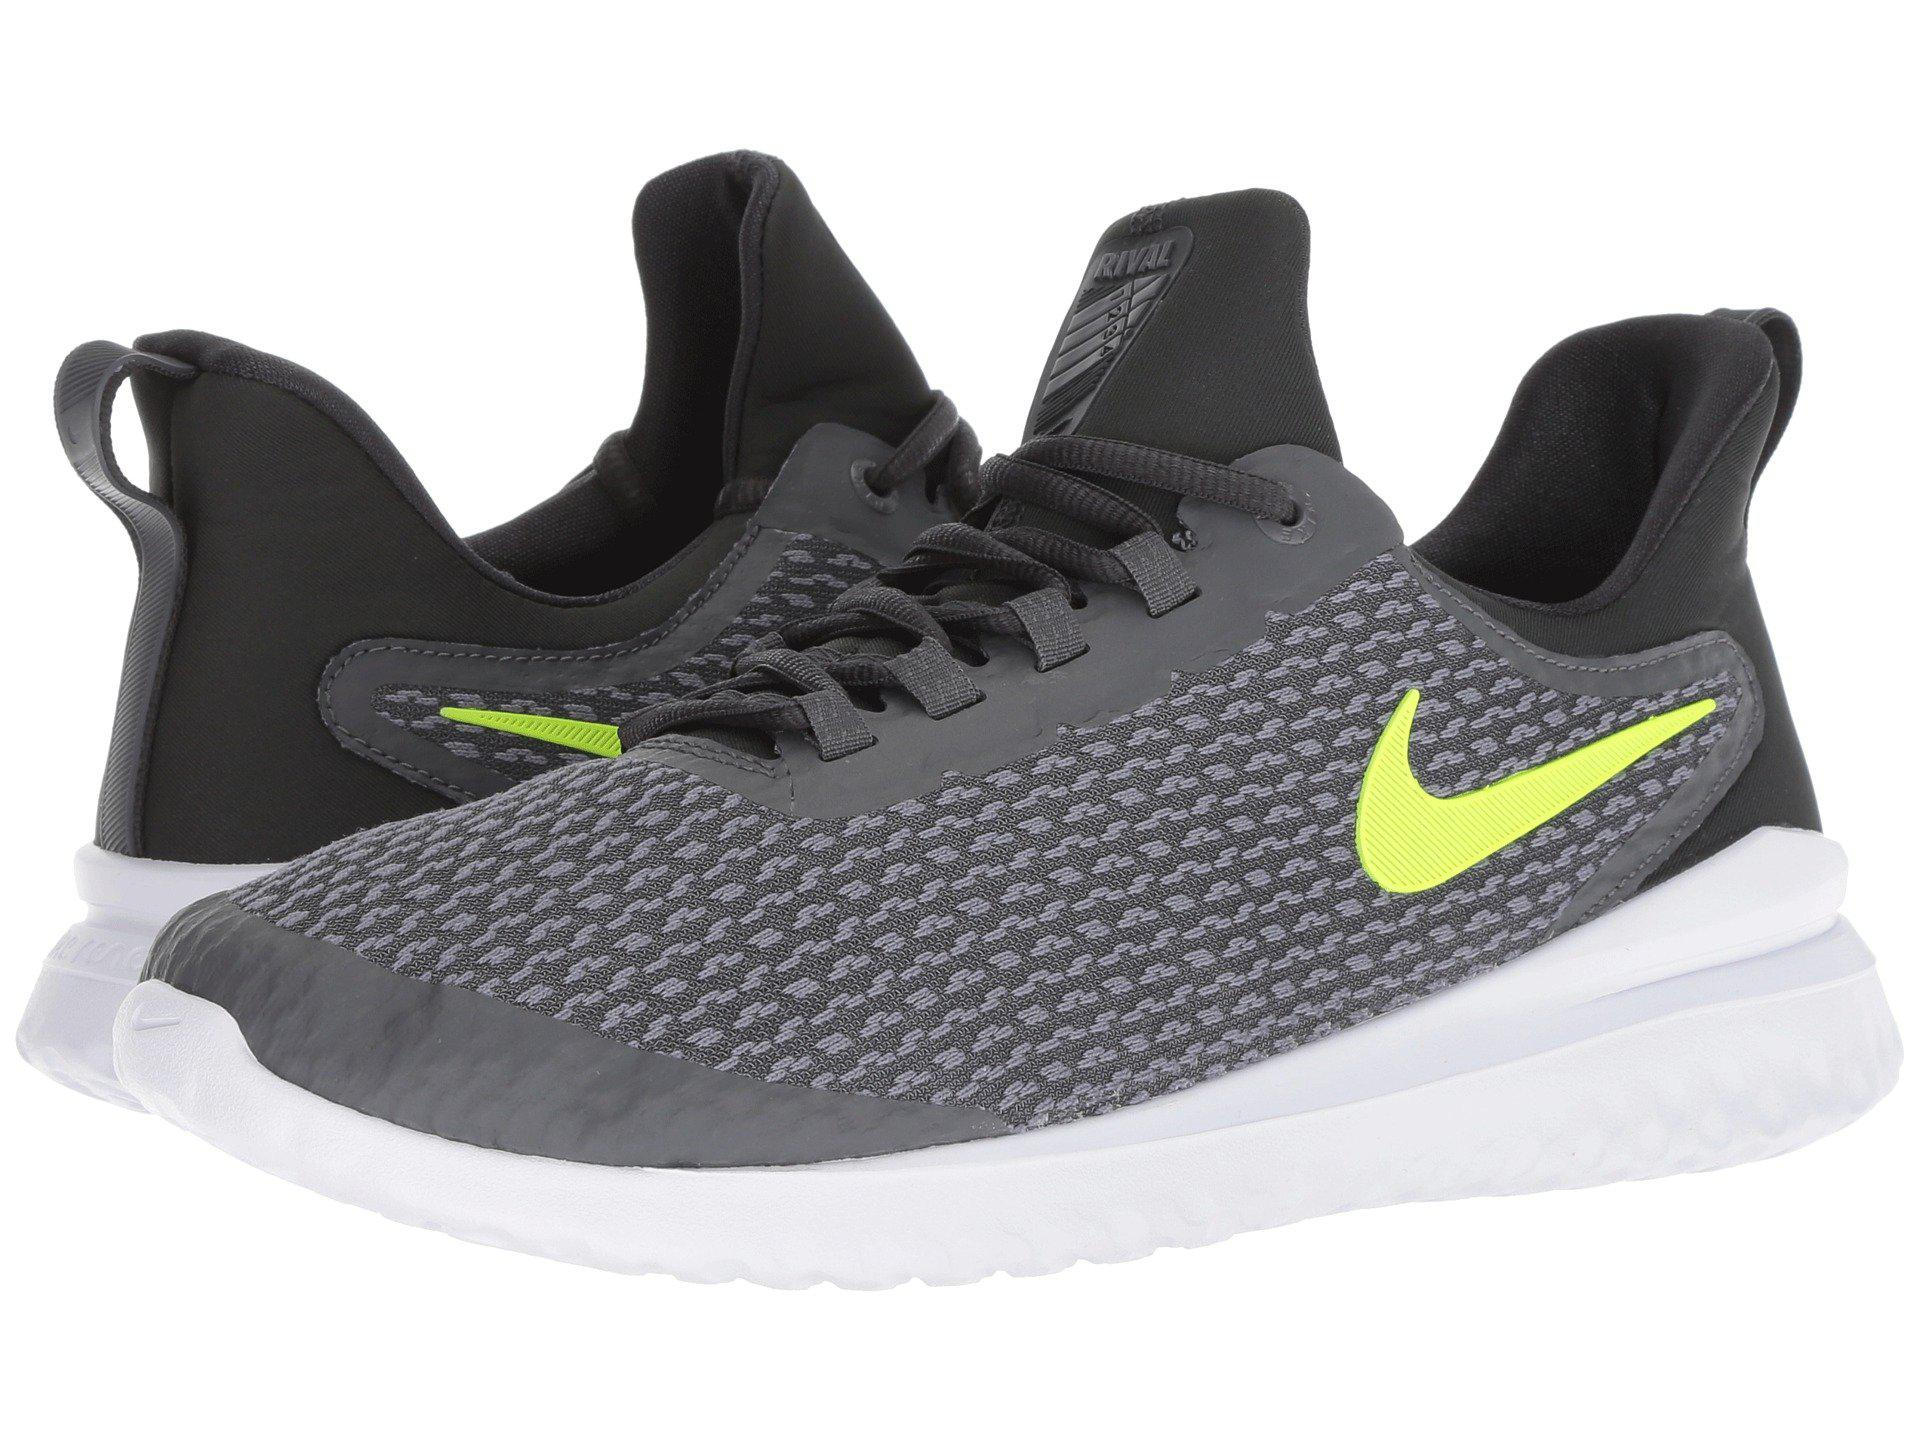 5e34a96b426 Lyst - Nike Renew Rival in Gray for Men - Save 14%